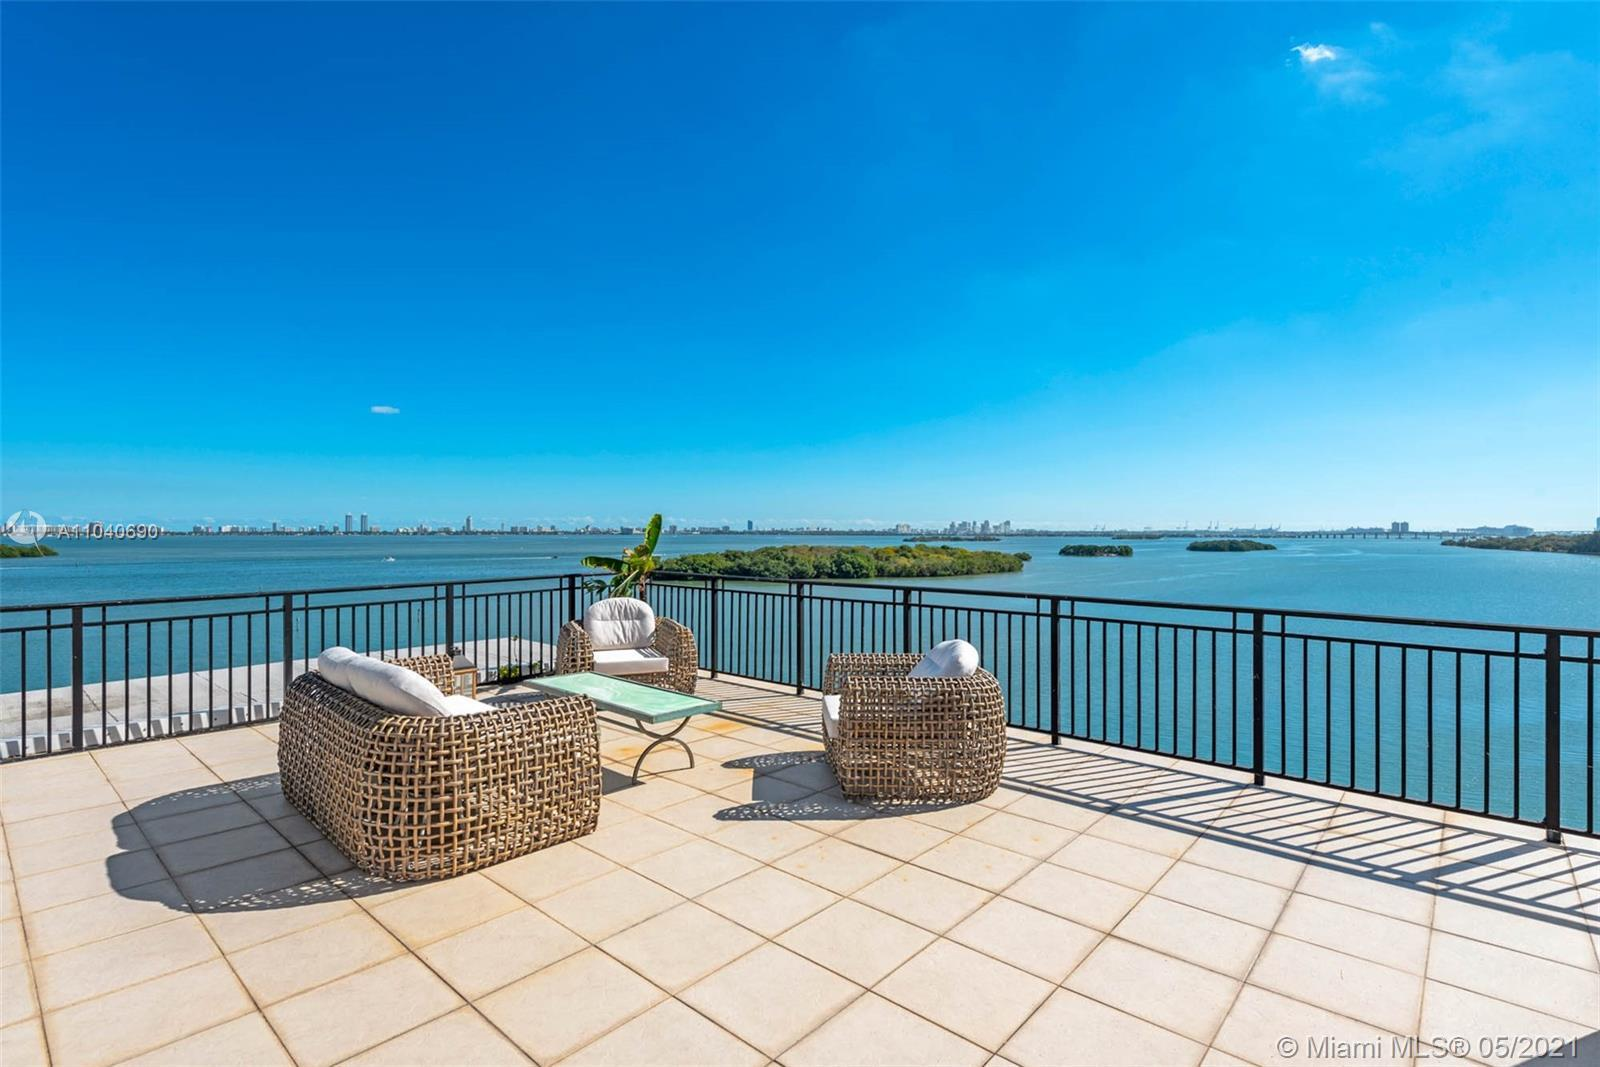 Private, unobstructed bay views for miles are yours in this exquisite and unique 3,500 square foot p